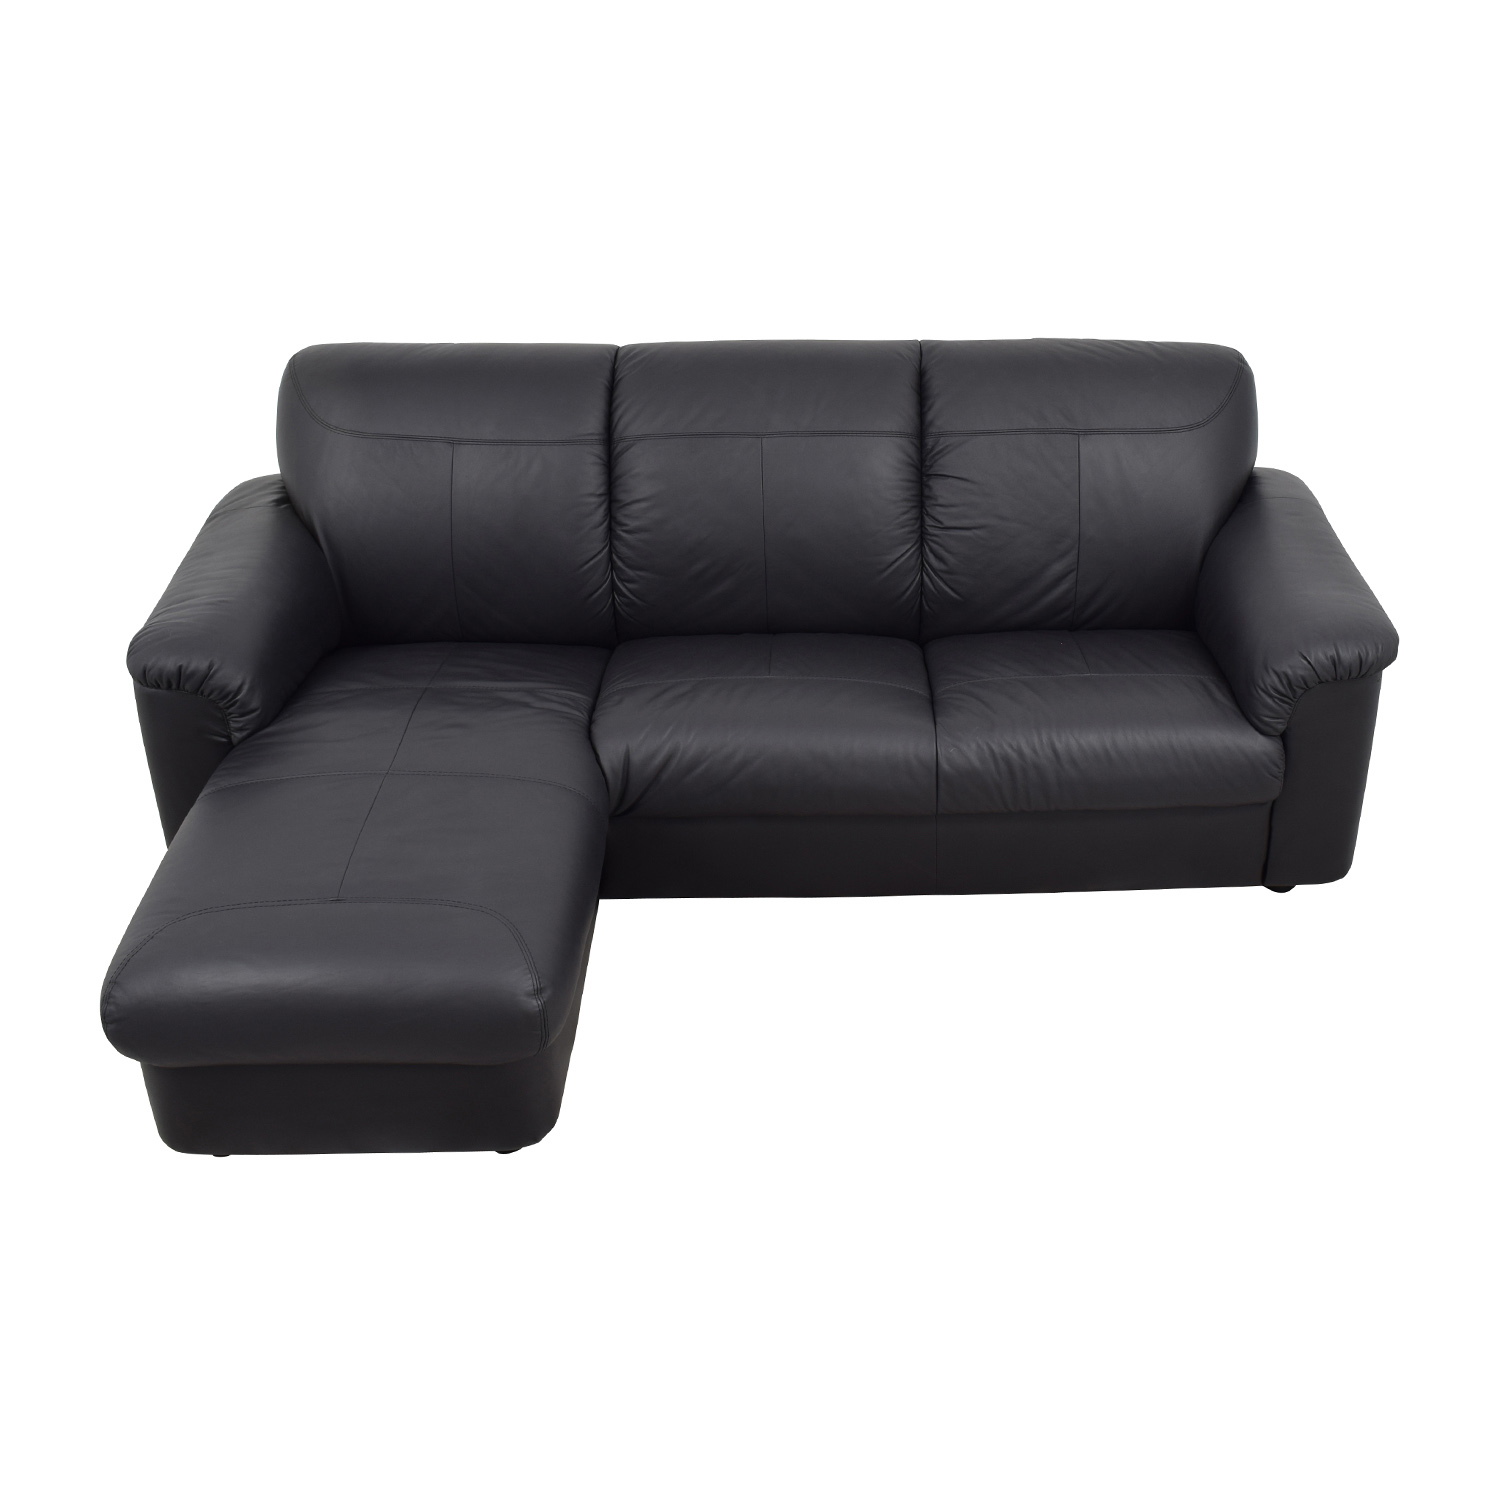 ikea black furniture. Buy IKEA Black 3-Piece Leather Sectional Sofas Ikea Black Furniture